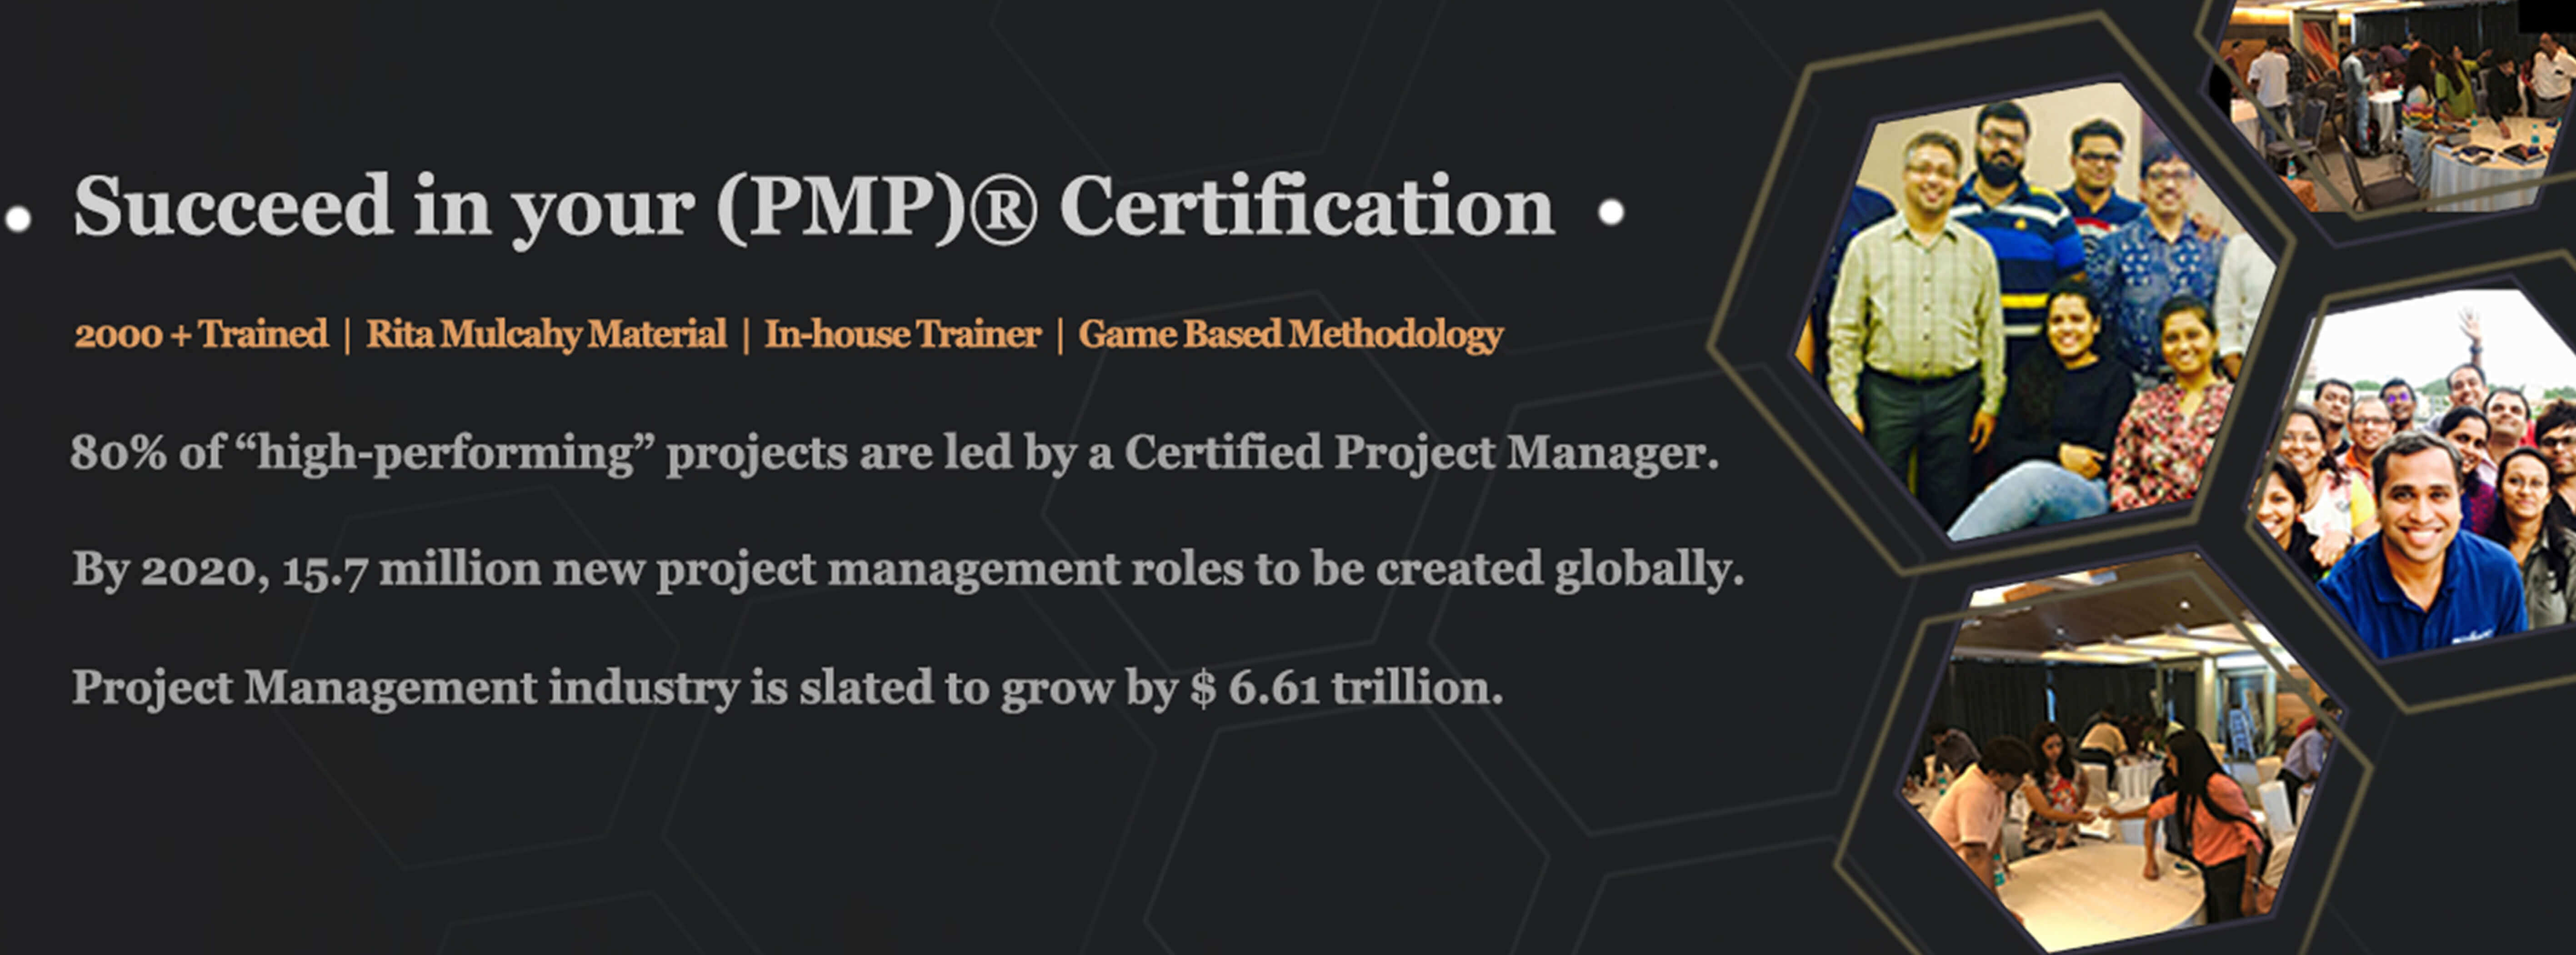 Pmp Certification Training Course In Pune Prothoughts